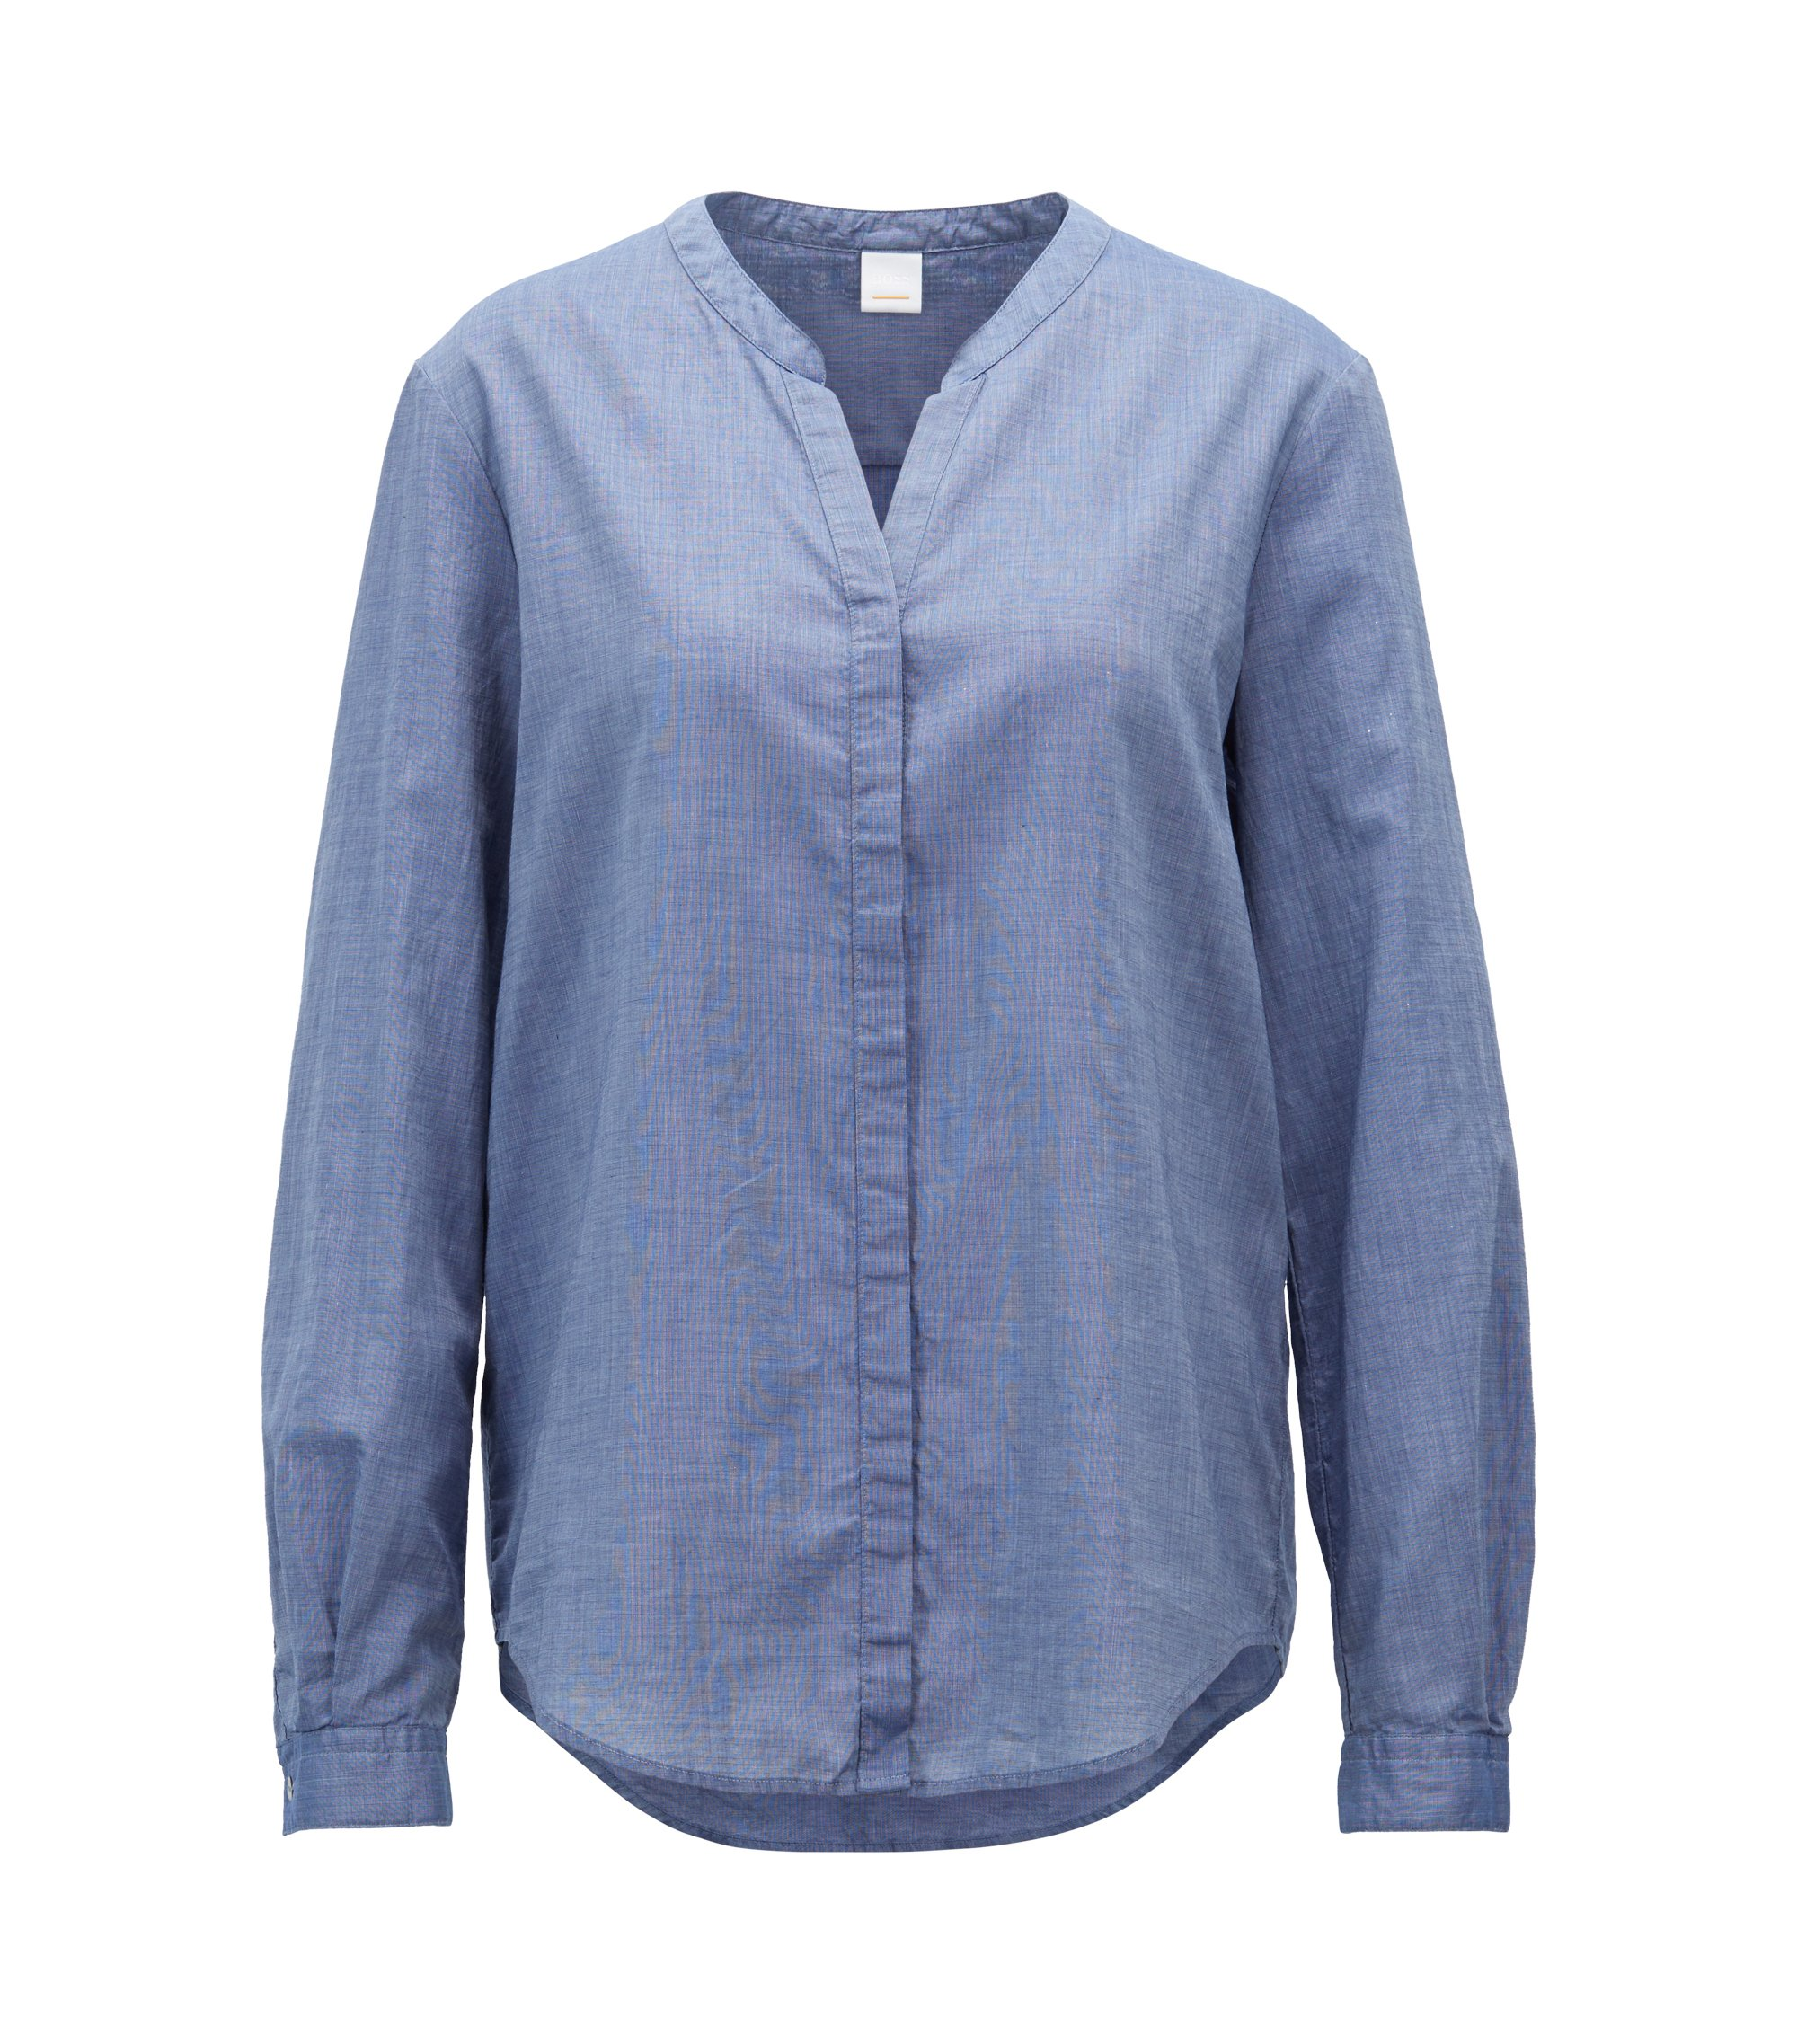 Relaxed-Fit Bluse aus Chambray, Dunkelblau